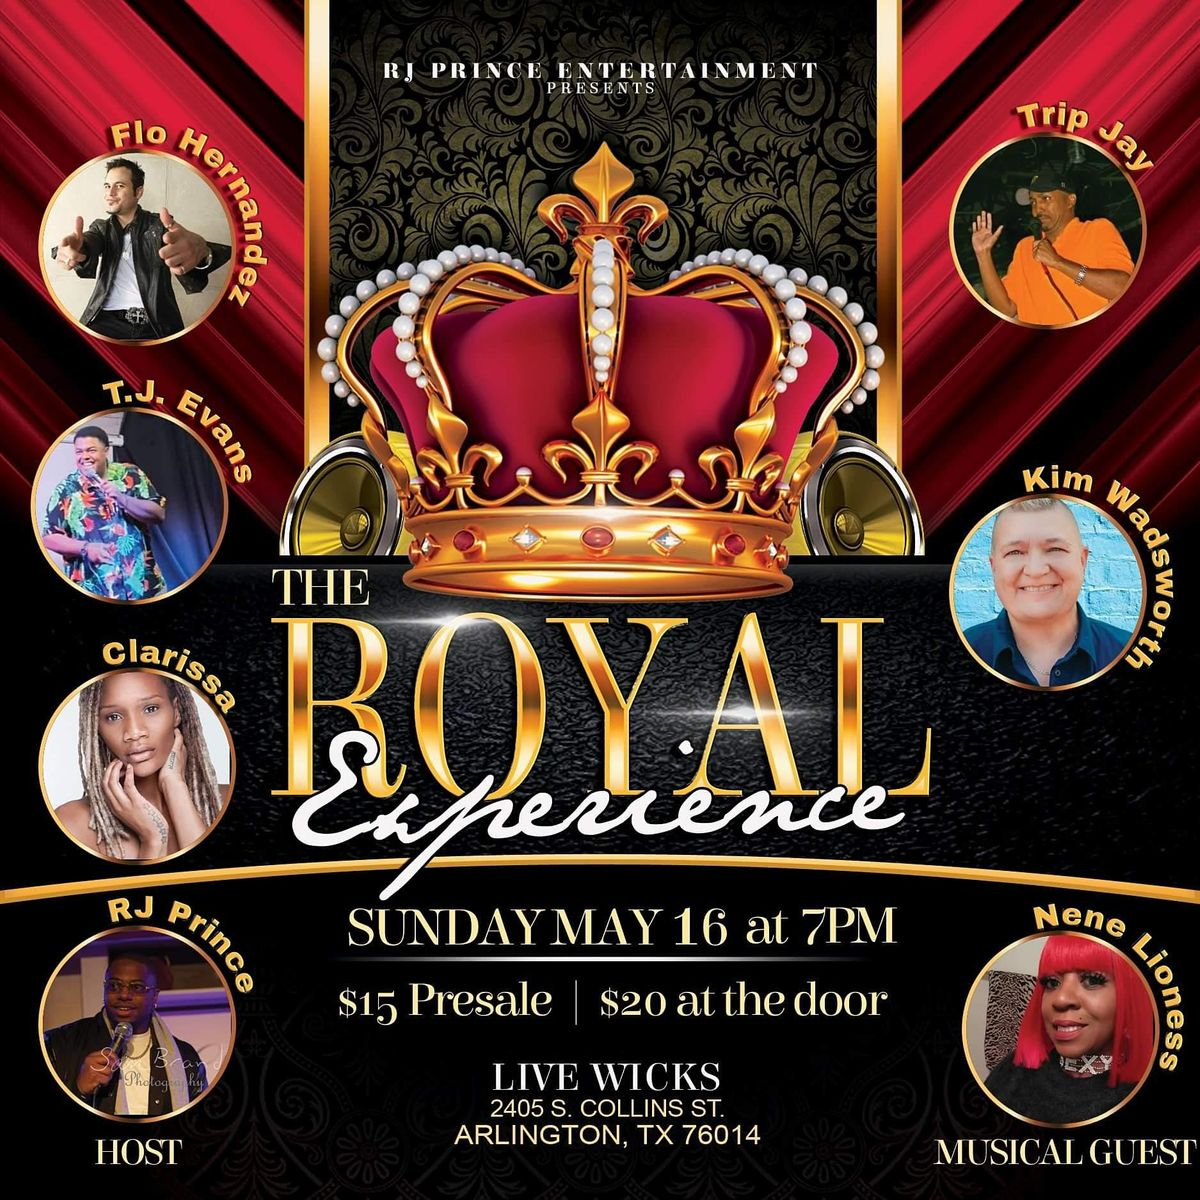 RJ Prince Entertainment presents: The Royal Experience Comedy show | Event in Arlington | AllEvents.in